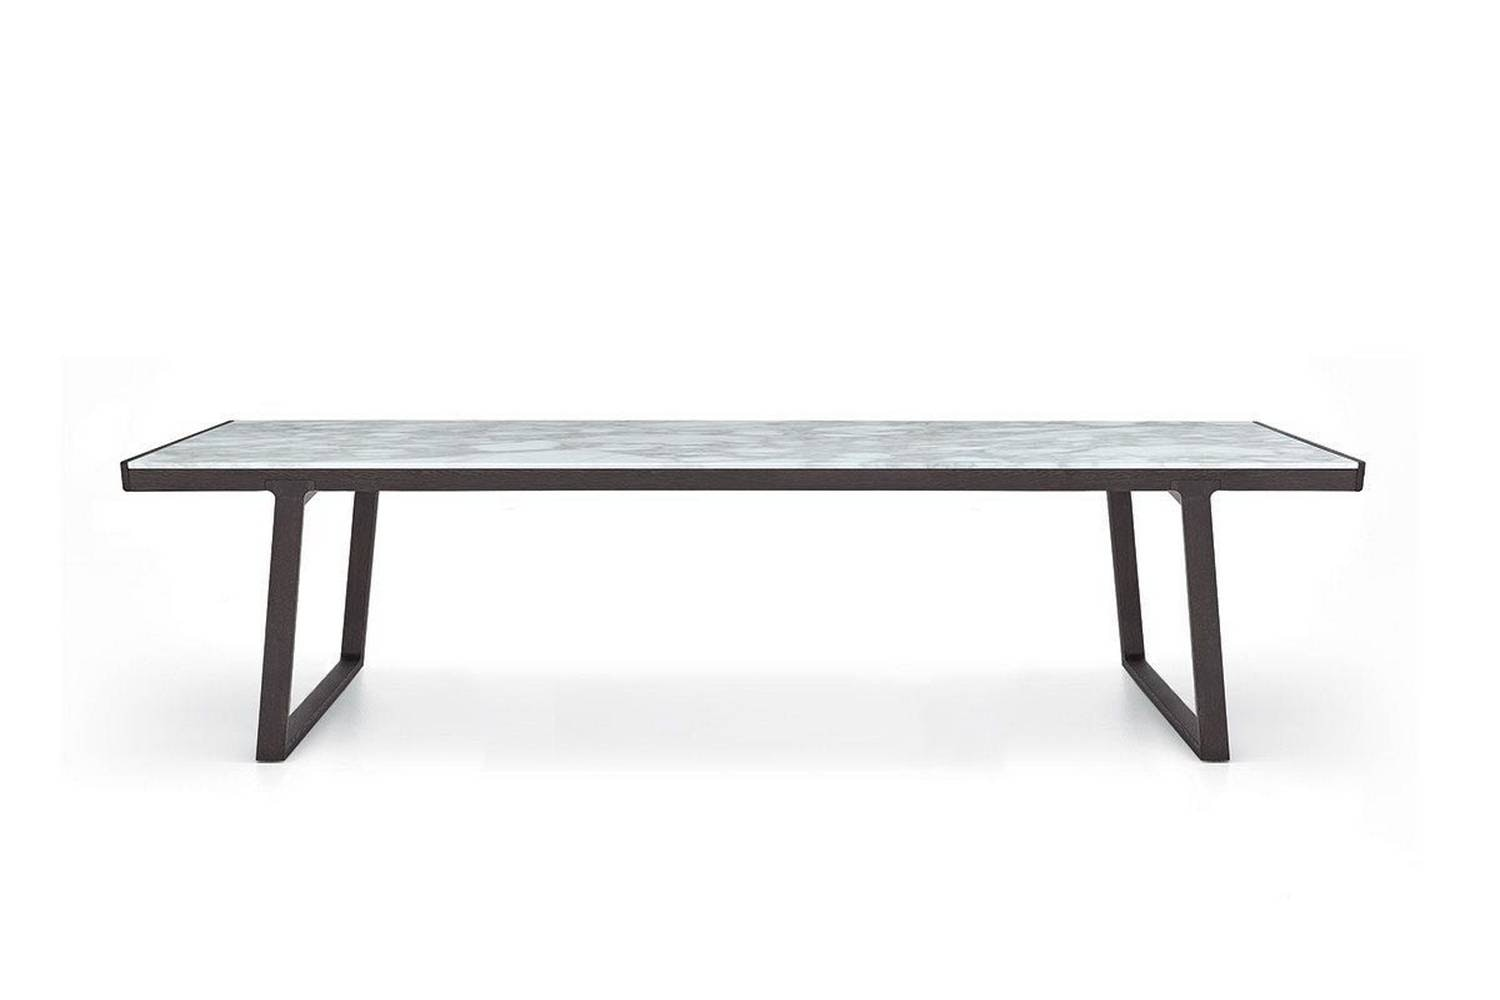 Opera Table by Emmanuel Gallina for Poliform